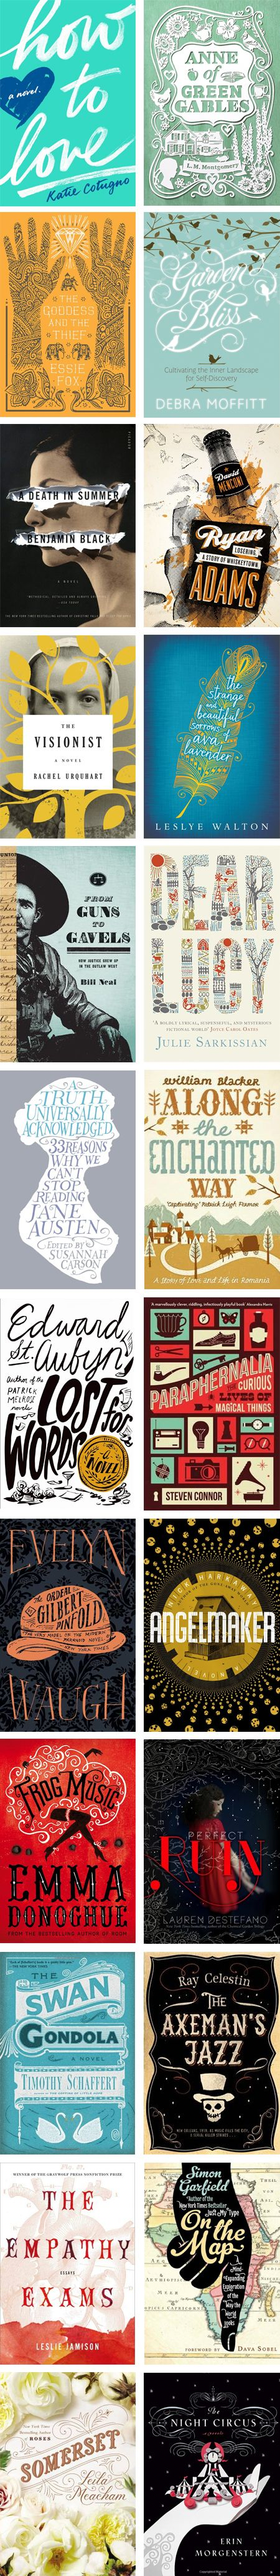 // The Comfort Of Thingy-ness... more book covers from fab svetlana bilenkina